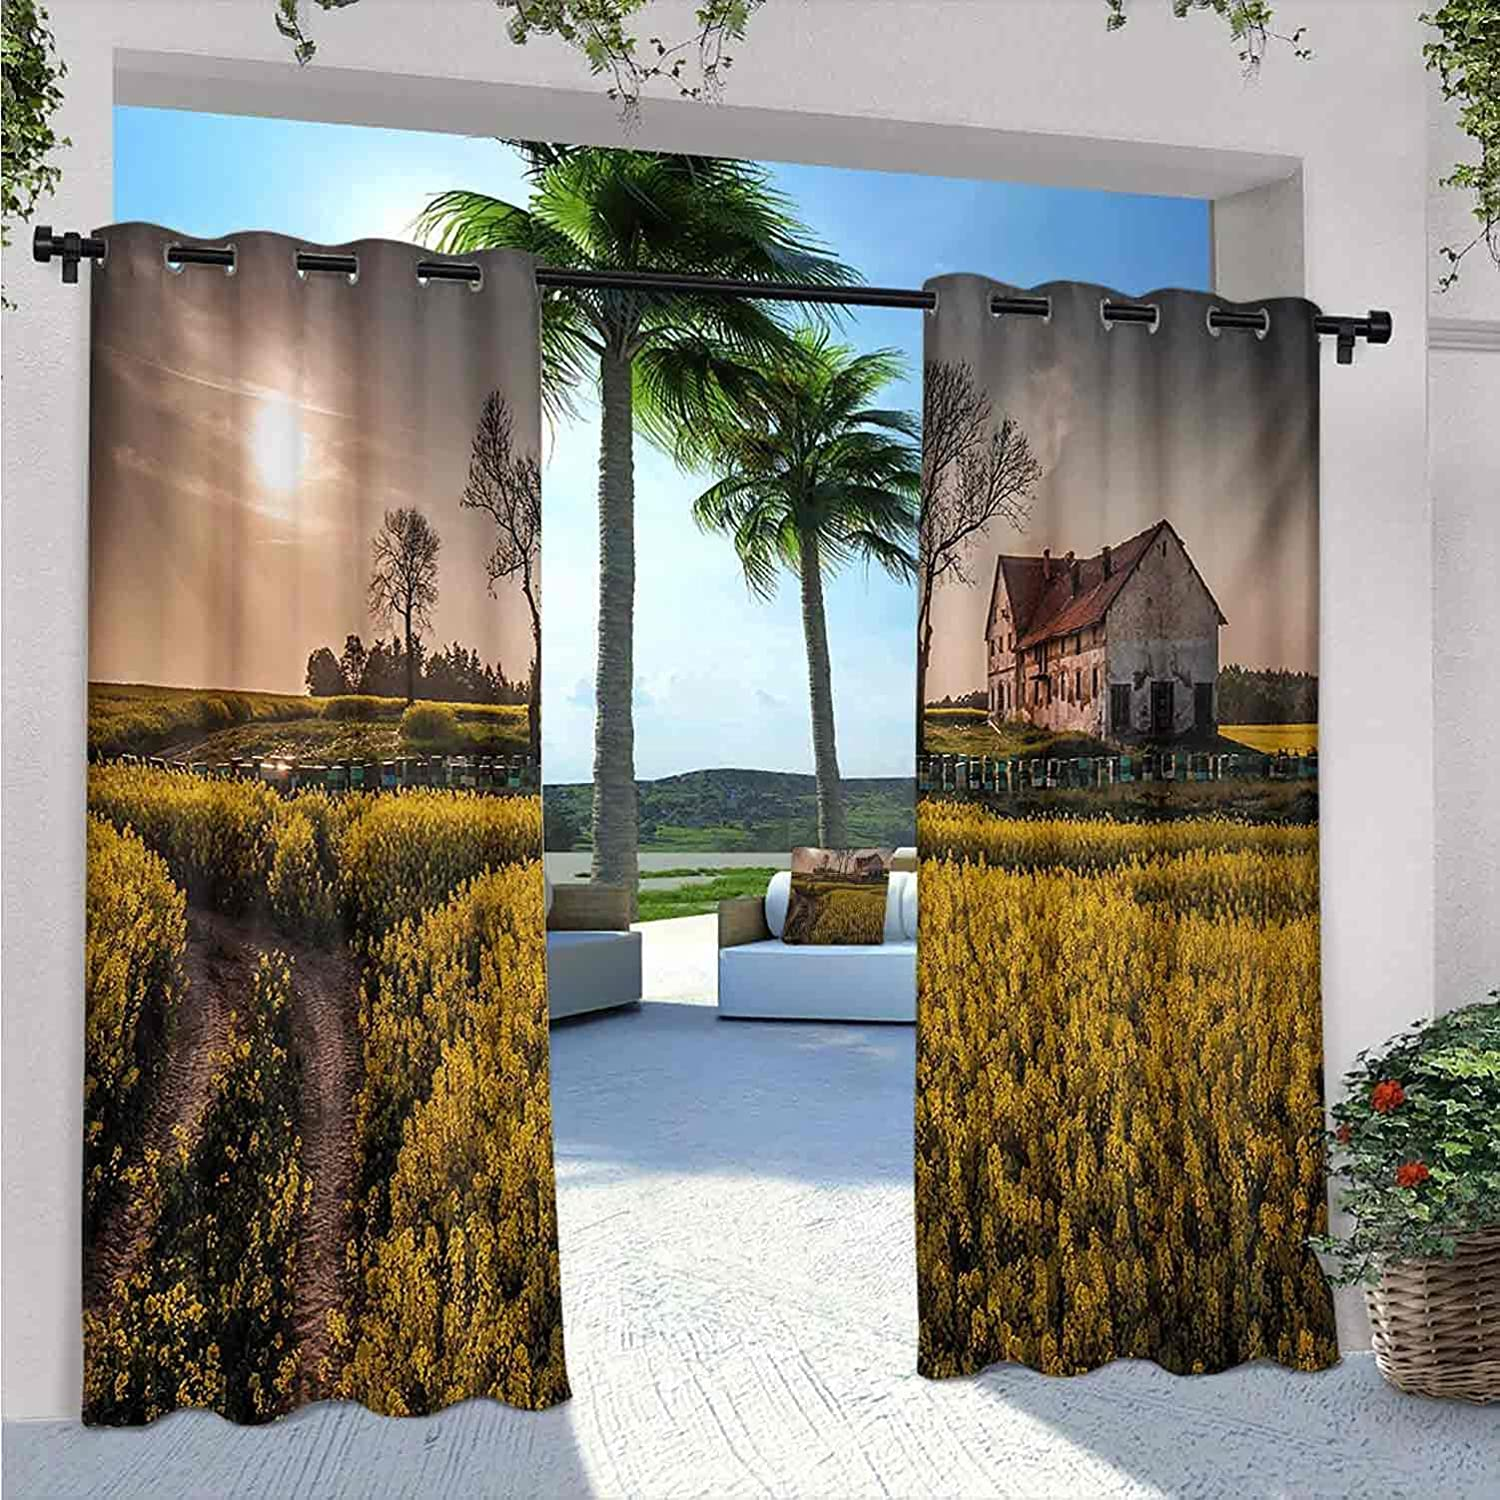 Country Home Outdoor Curtains Boston Mall for Ranking TOP12 Old Waterproof Abandone Patio